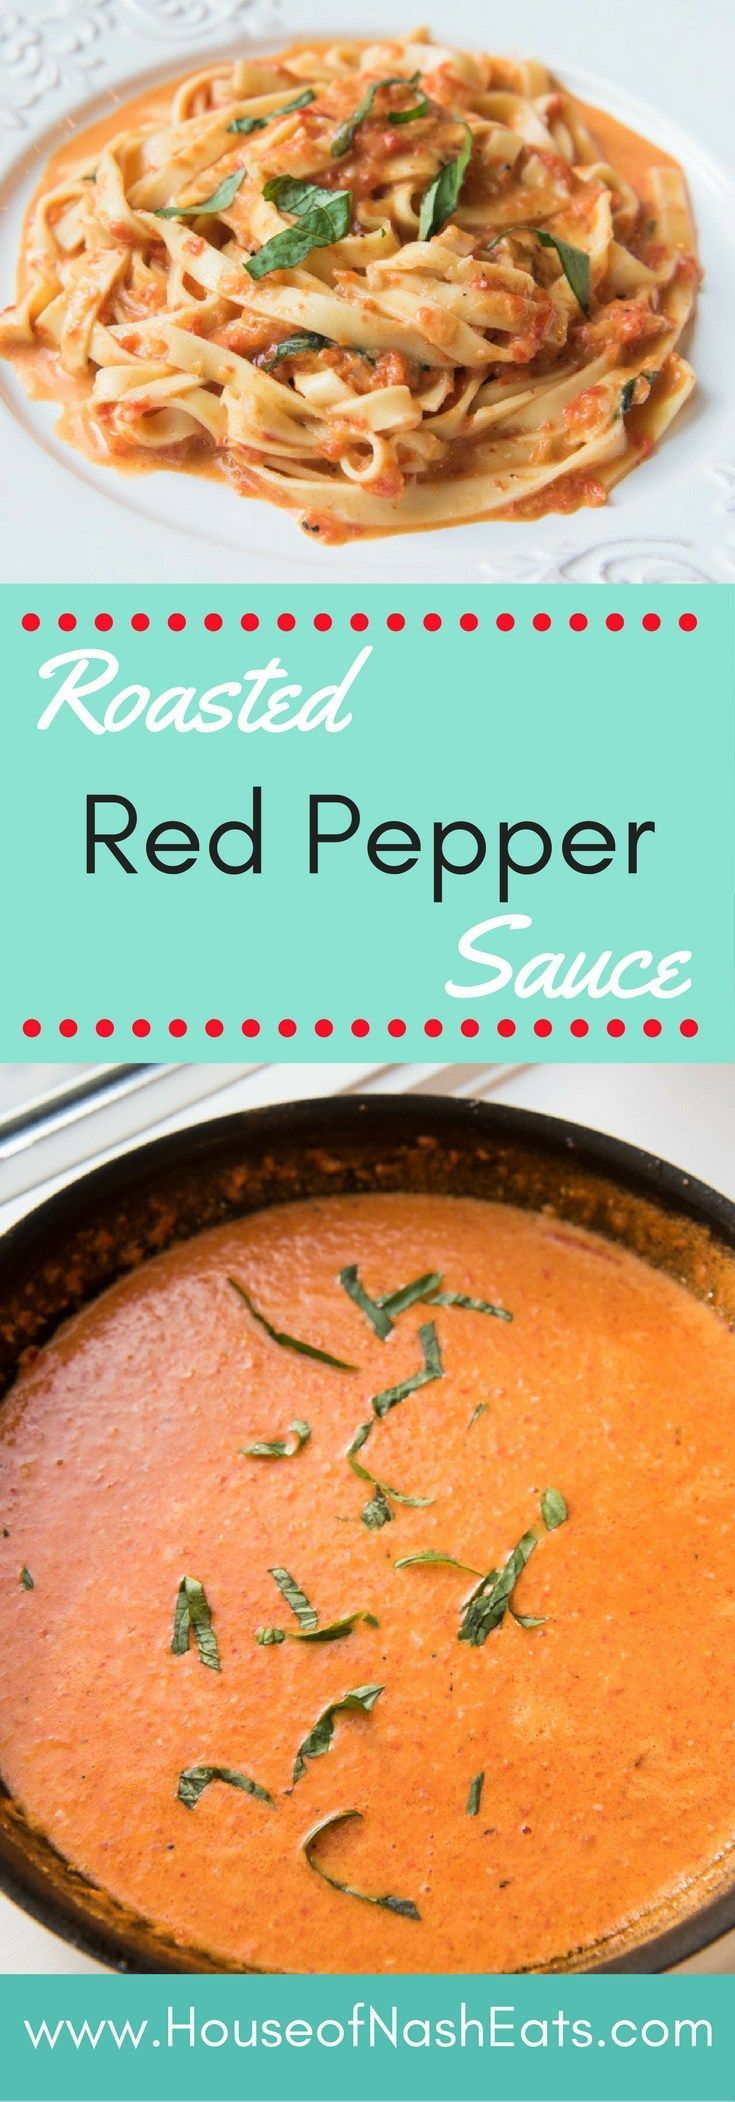 This Rich And Creamy Roasted Red Pepper Sauce Is Loaded With Amazing Flavors From Red Peppers Butter Stuffed Peppers Roasted Red Pepper Sauce Red Pepper Sauce [ 2102 x 735 Pixel ]